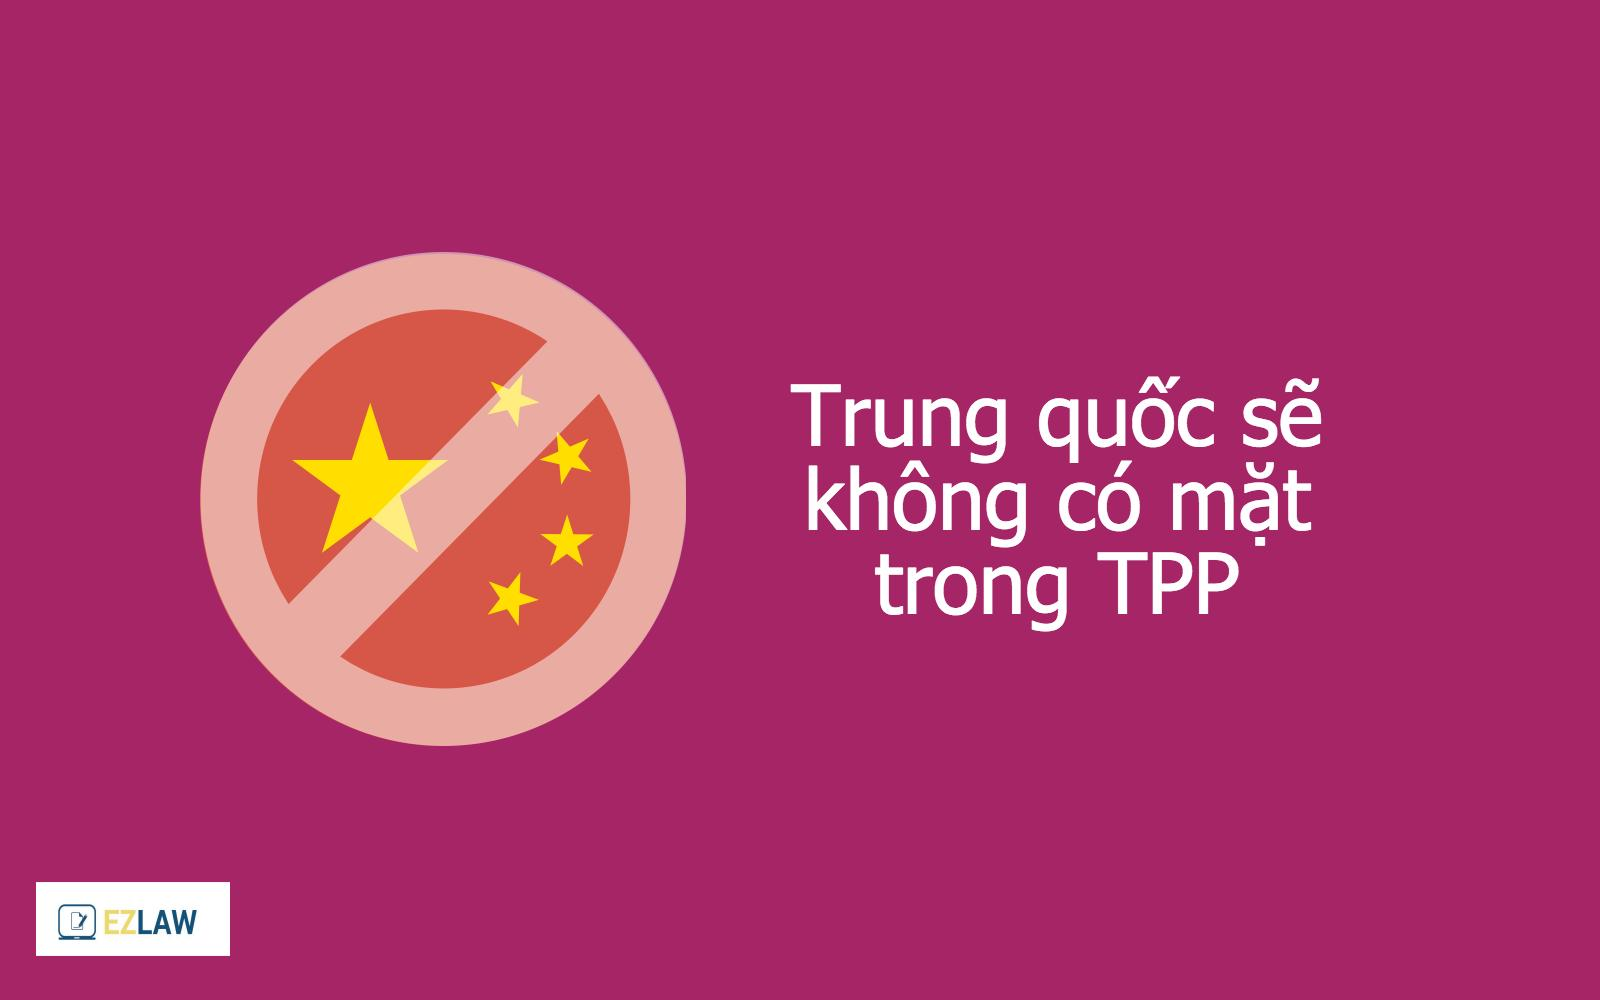 10 kien thuc can ban ve hiep dinh tpp hinh anh 5